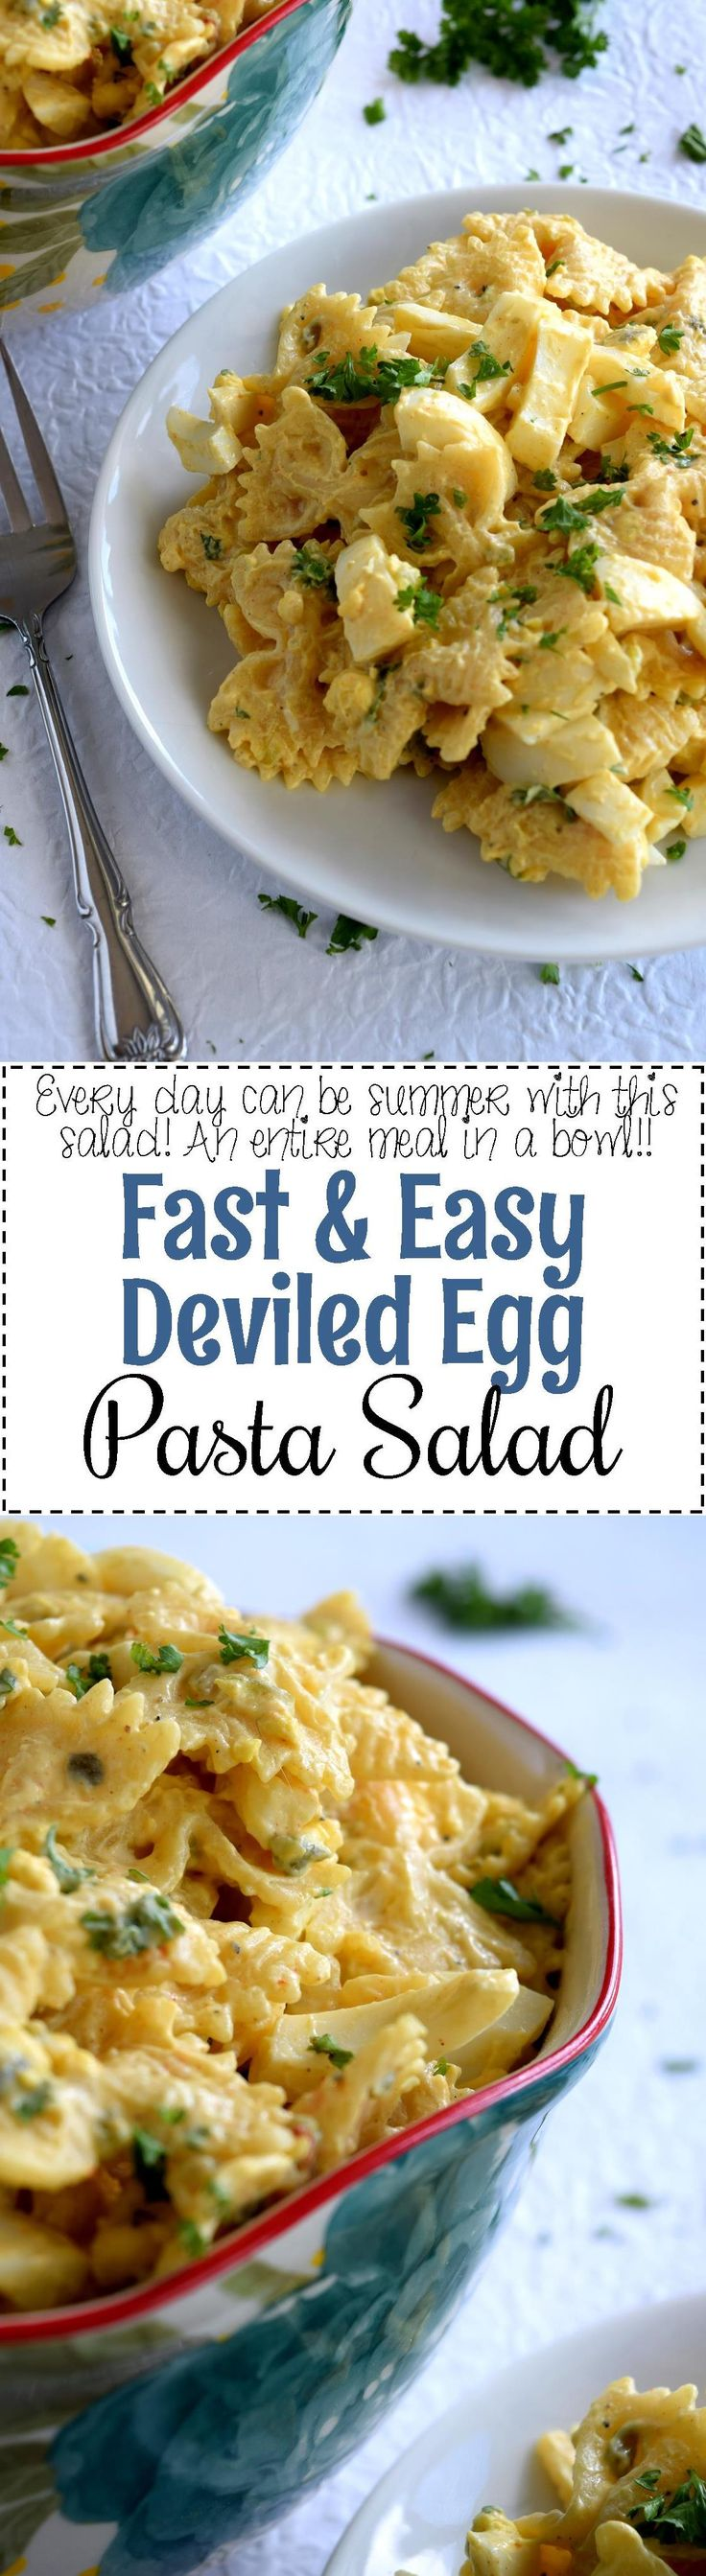 Fast and Easy Deviled Egg Pasta Salad - Fast & Easy Deviled Egg Pasta Salad is the perfect summer picnic or family get-together potluck recipe. It's inexpensive and feeds a crowd. And, no party is complete without deviled eggs!